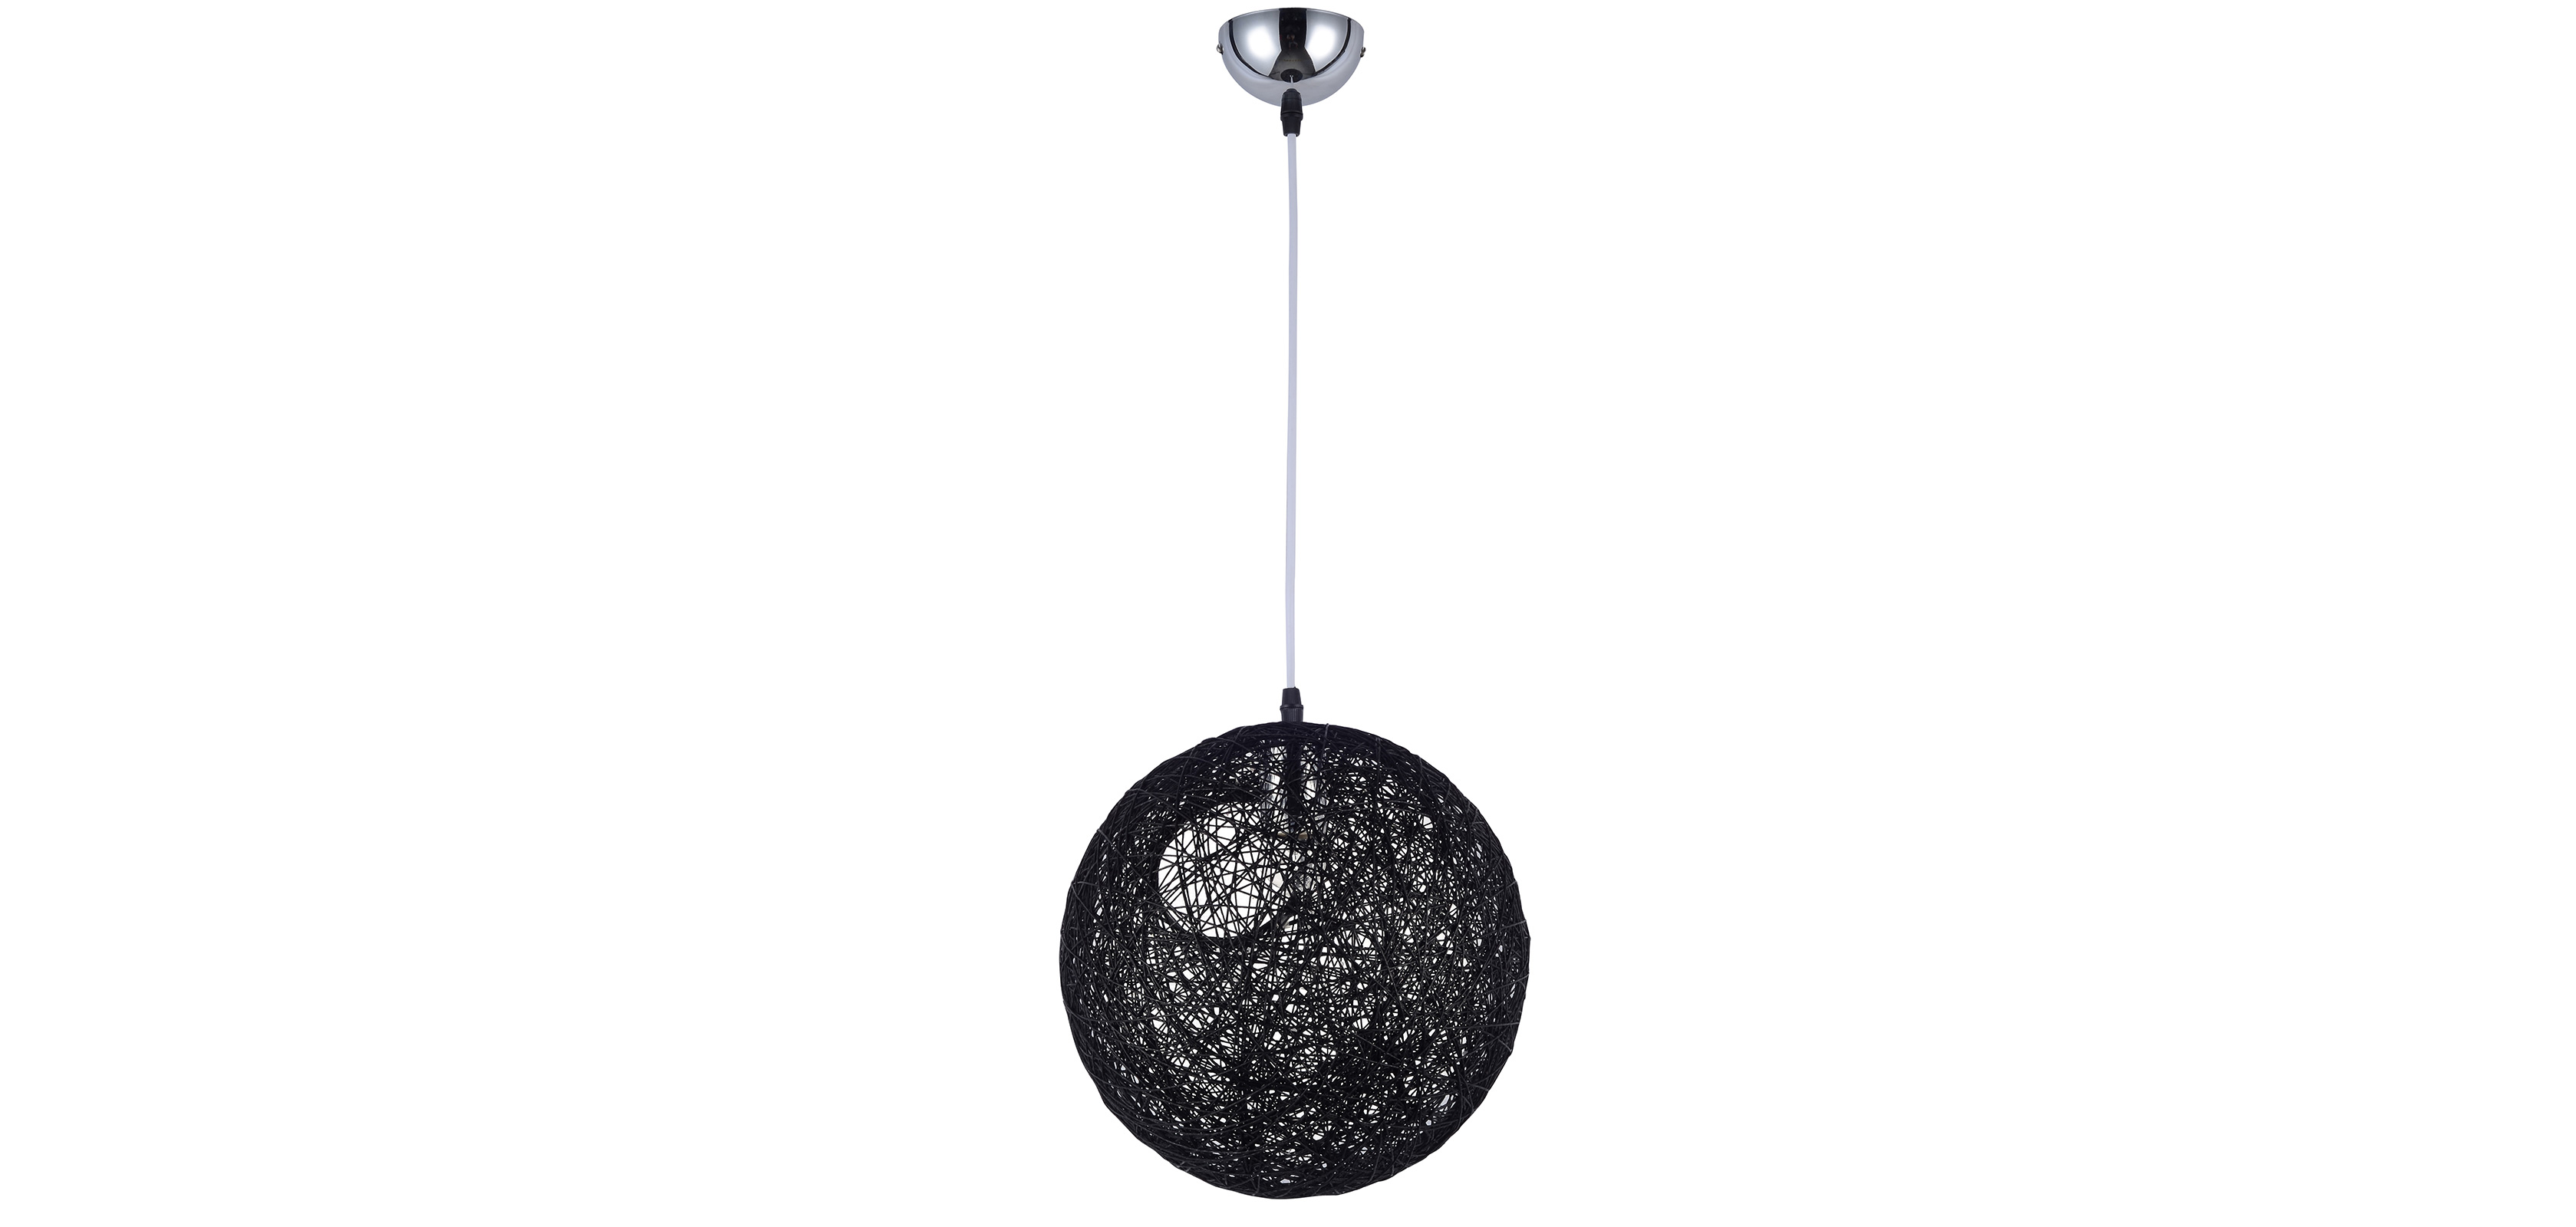 Lampe suspension boule al atoire 40 corde for Suspension boule noire